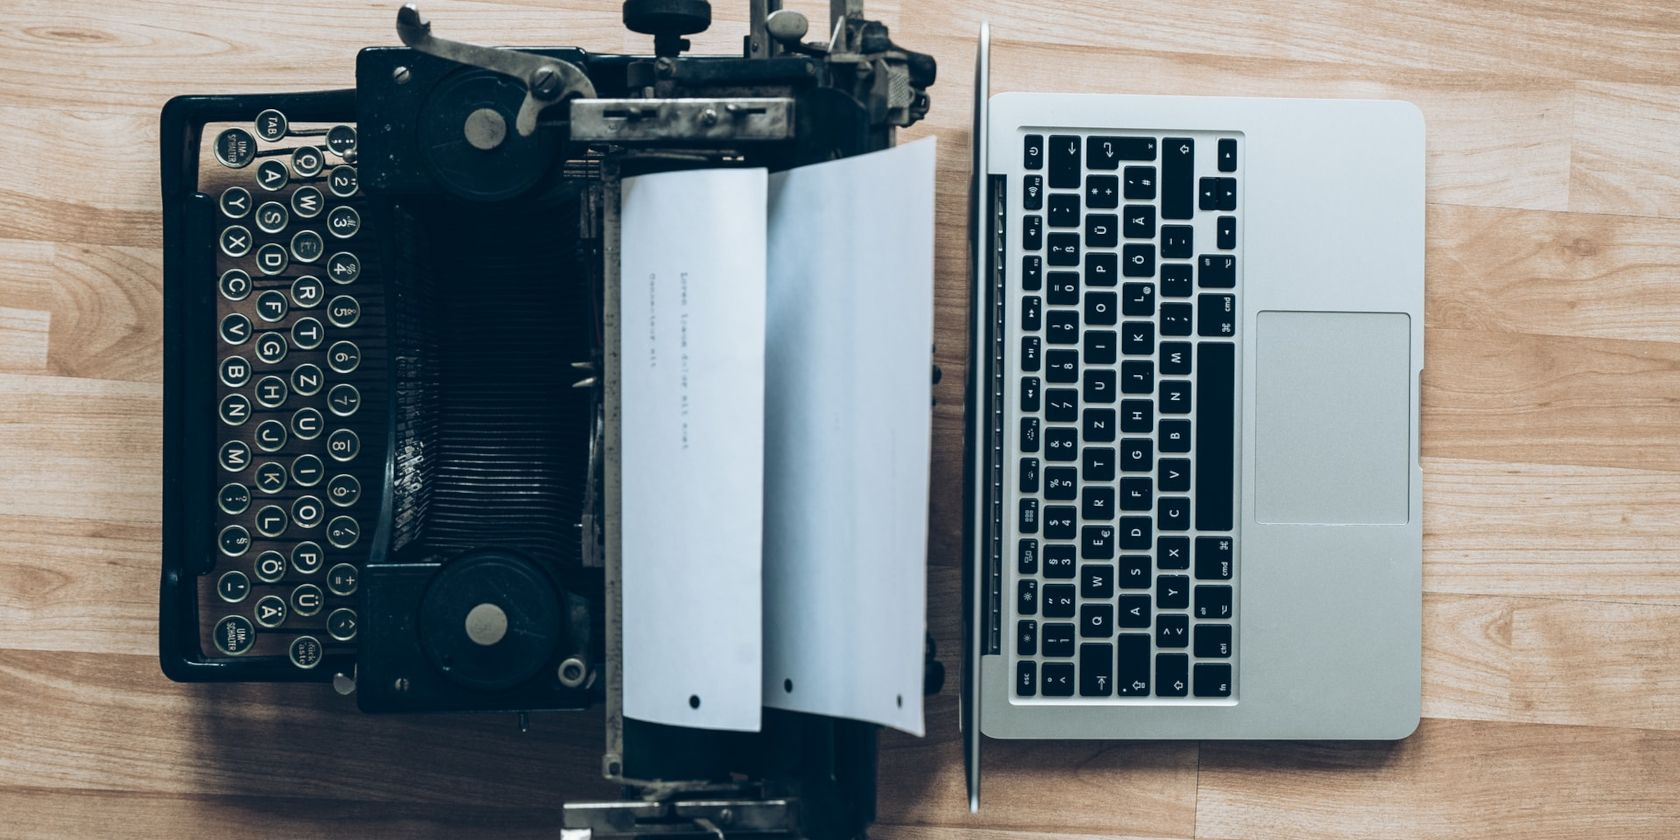 6 Reasons Why You Should Use Creative Writing Apps